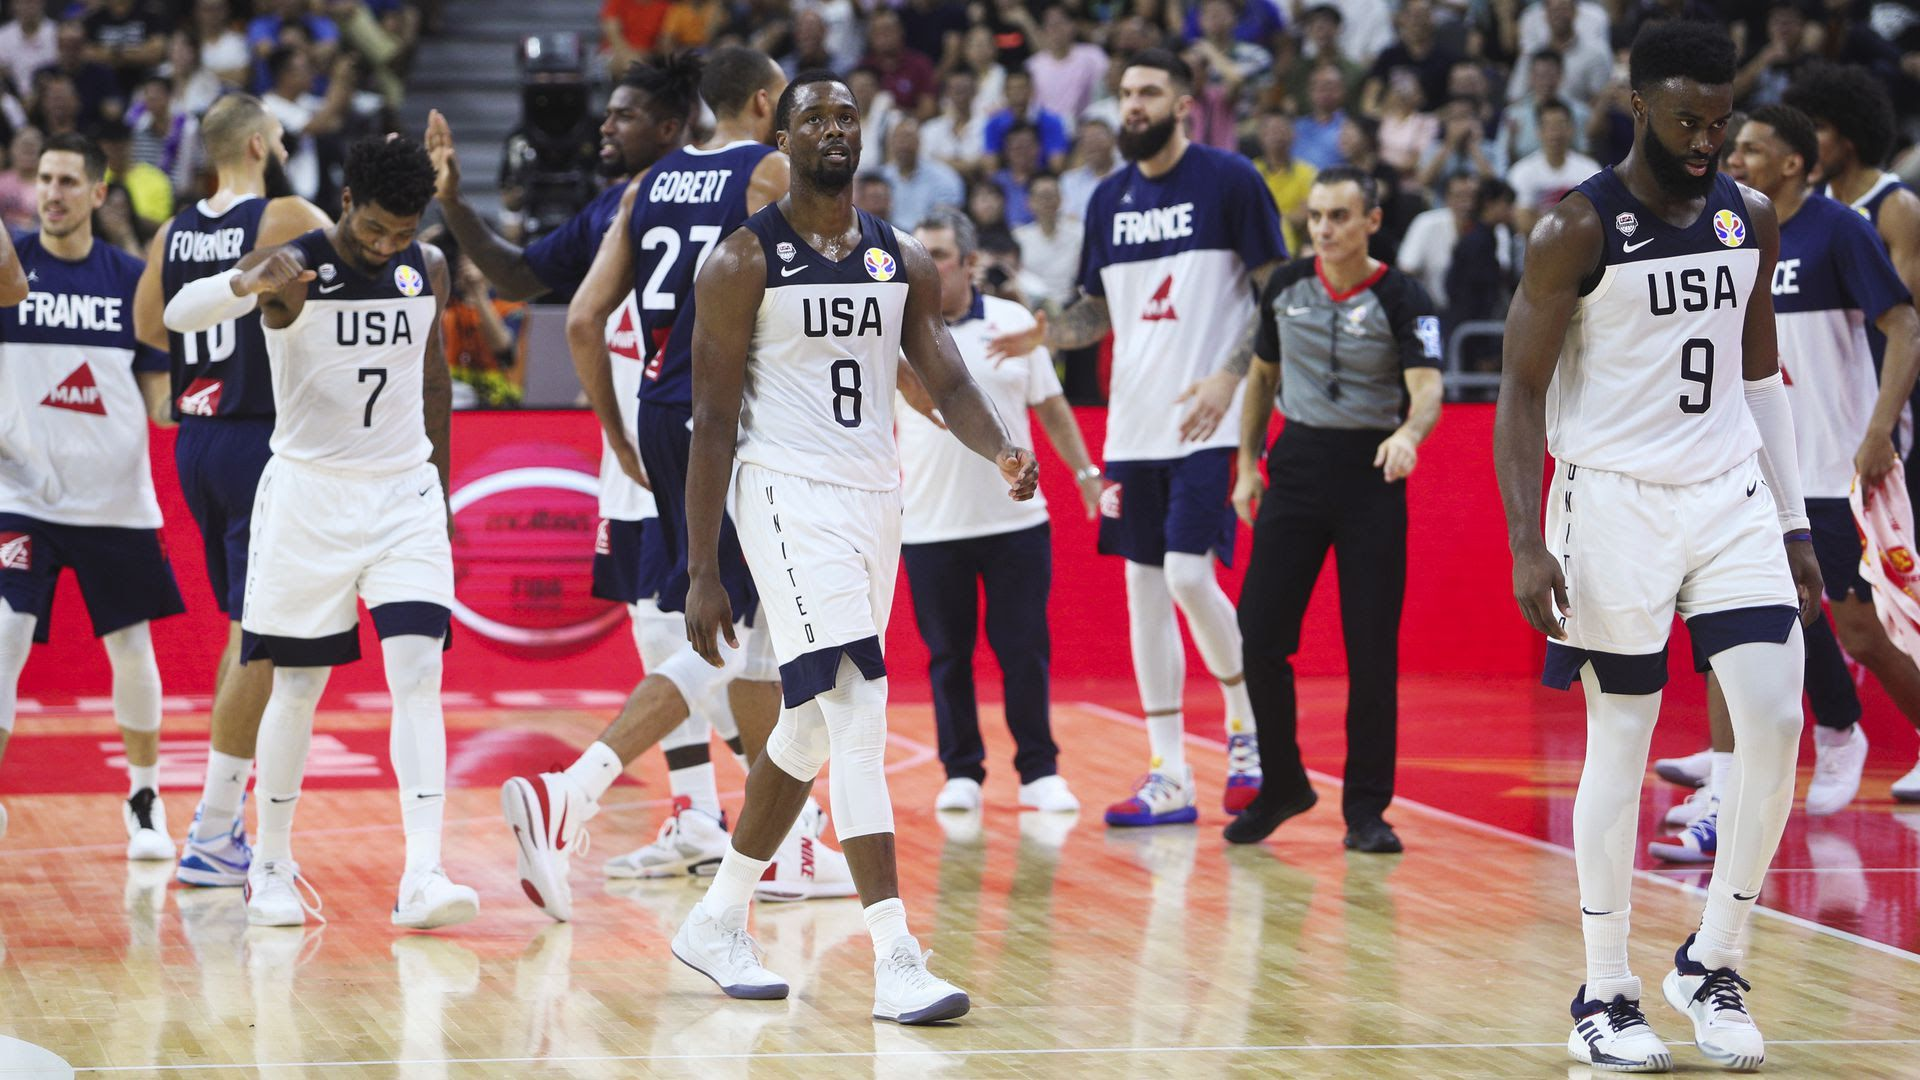 Team USA and Team France during the 2019 basketball world cup